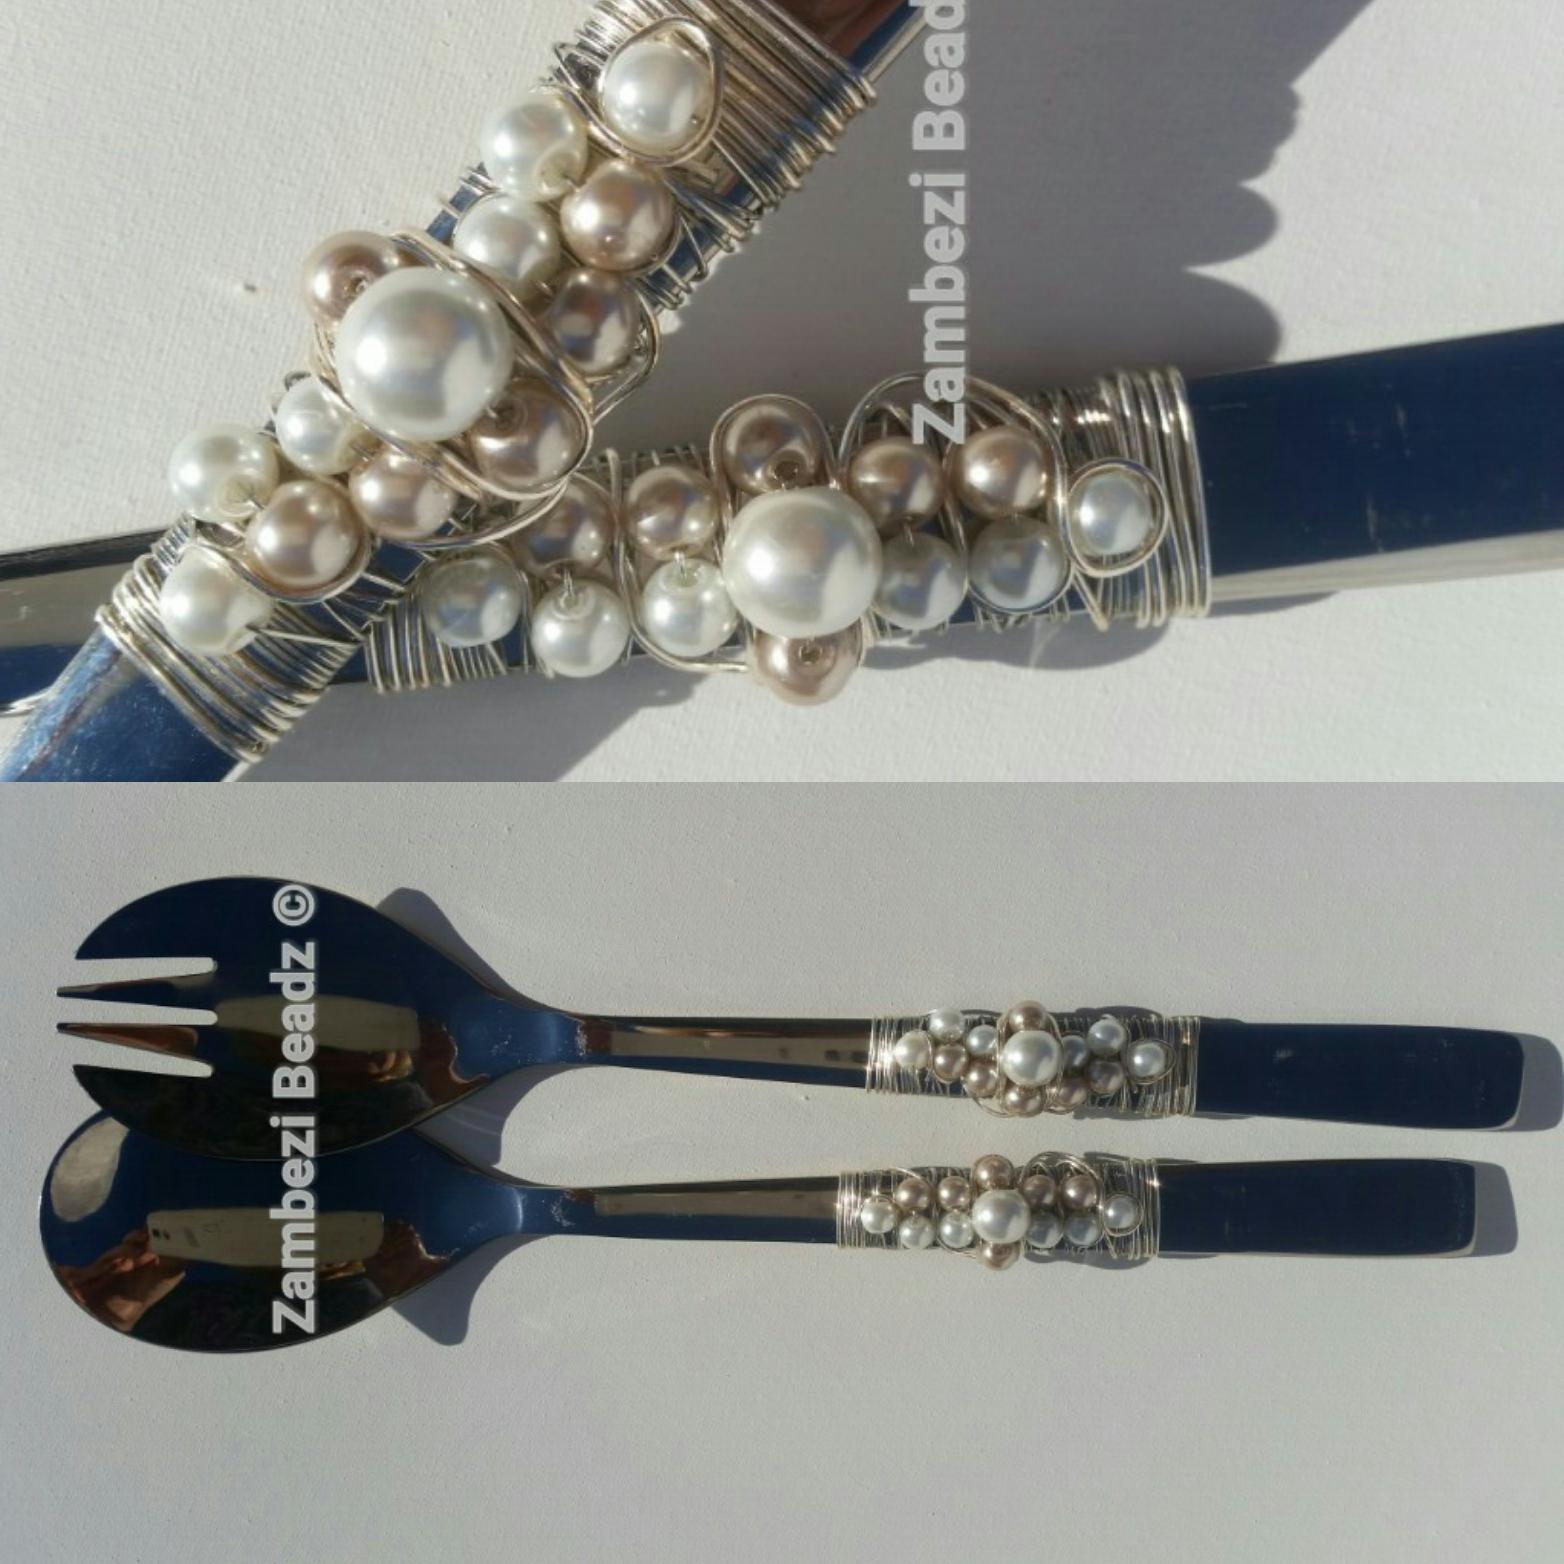 Fabulous salad servers for table styling